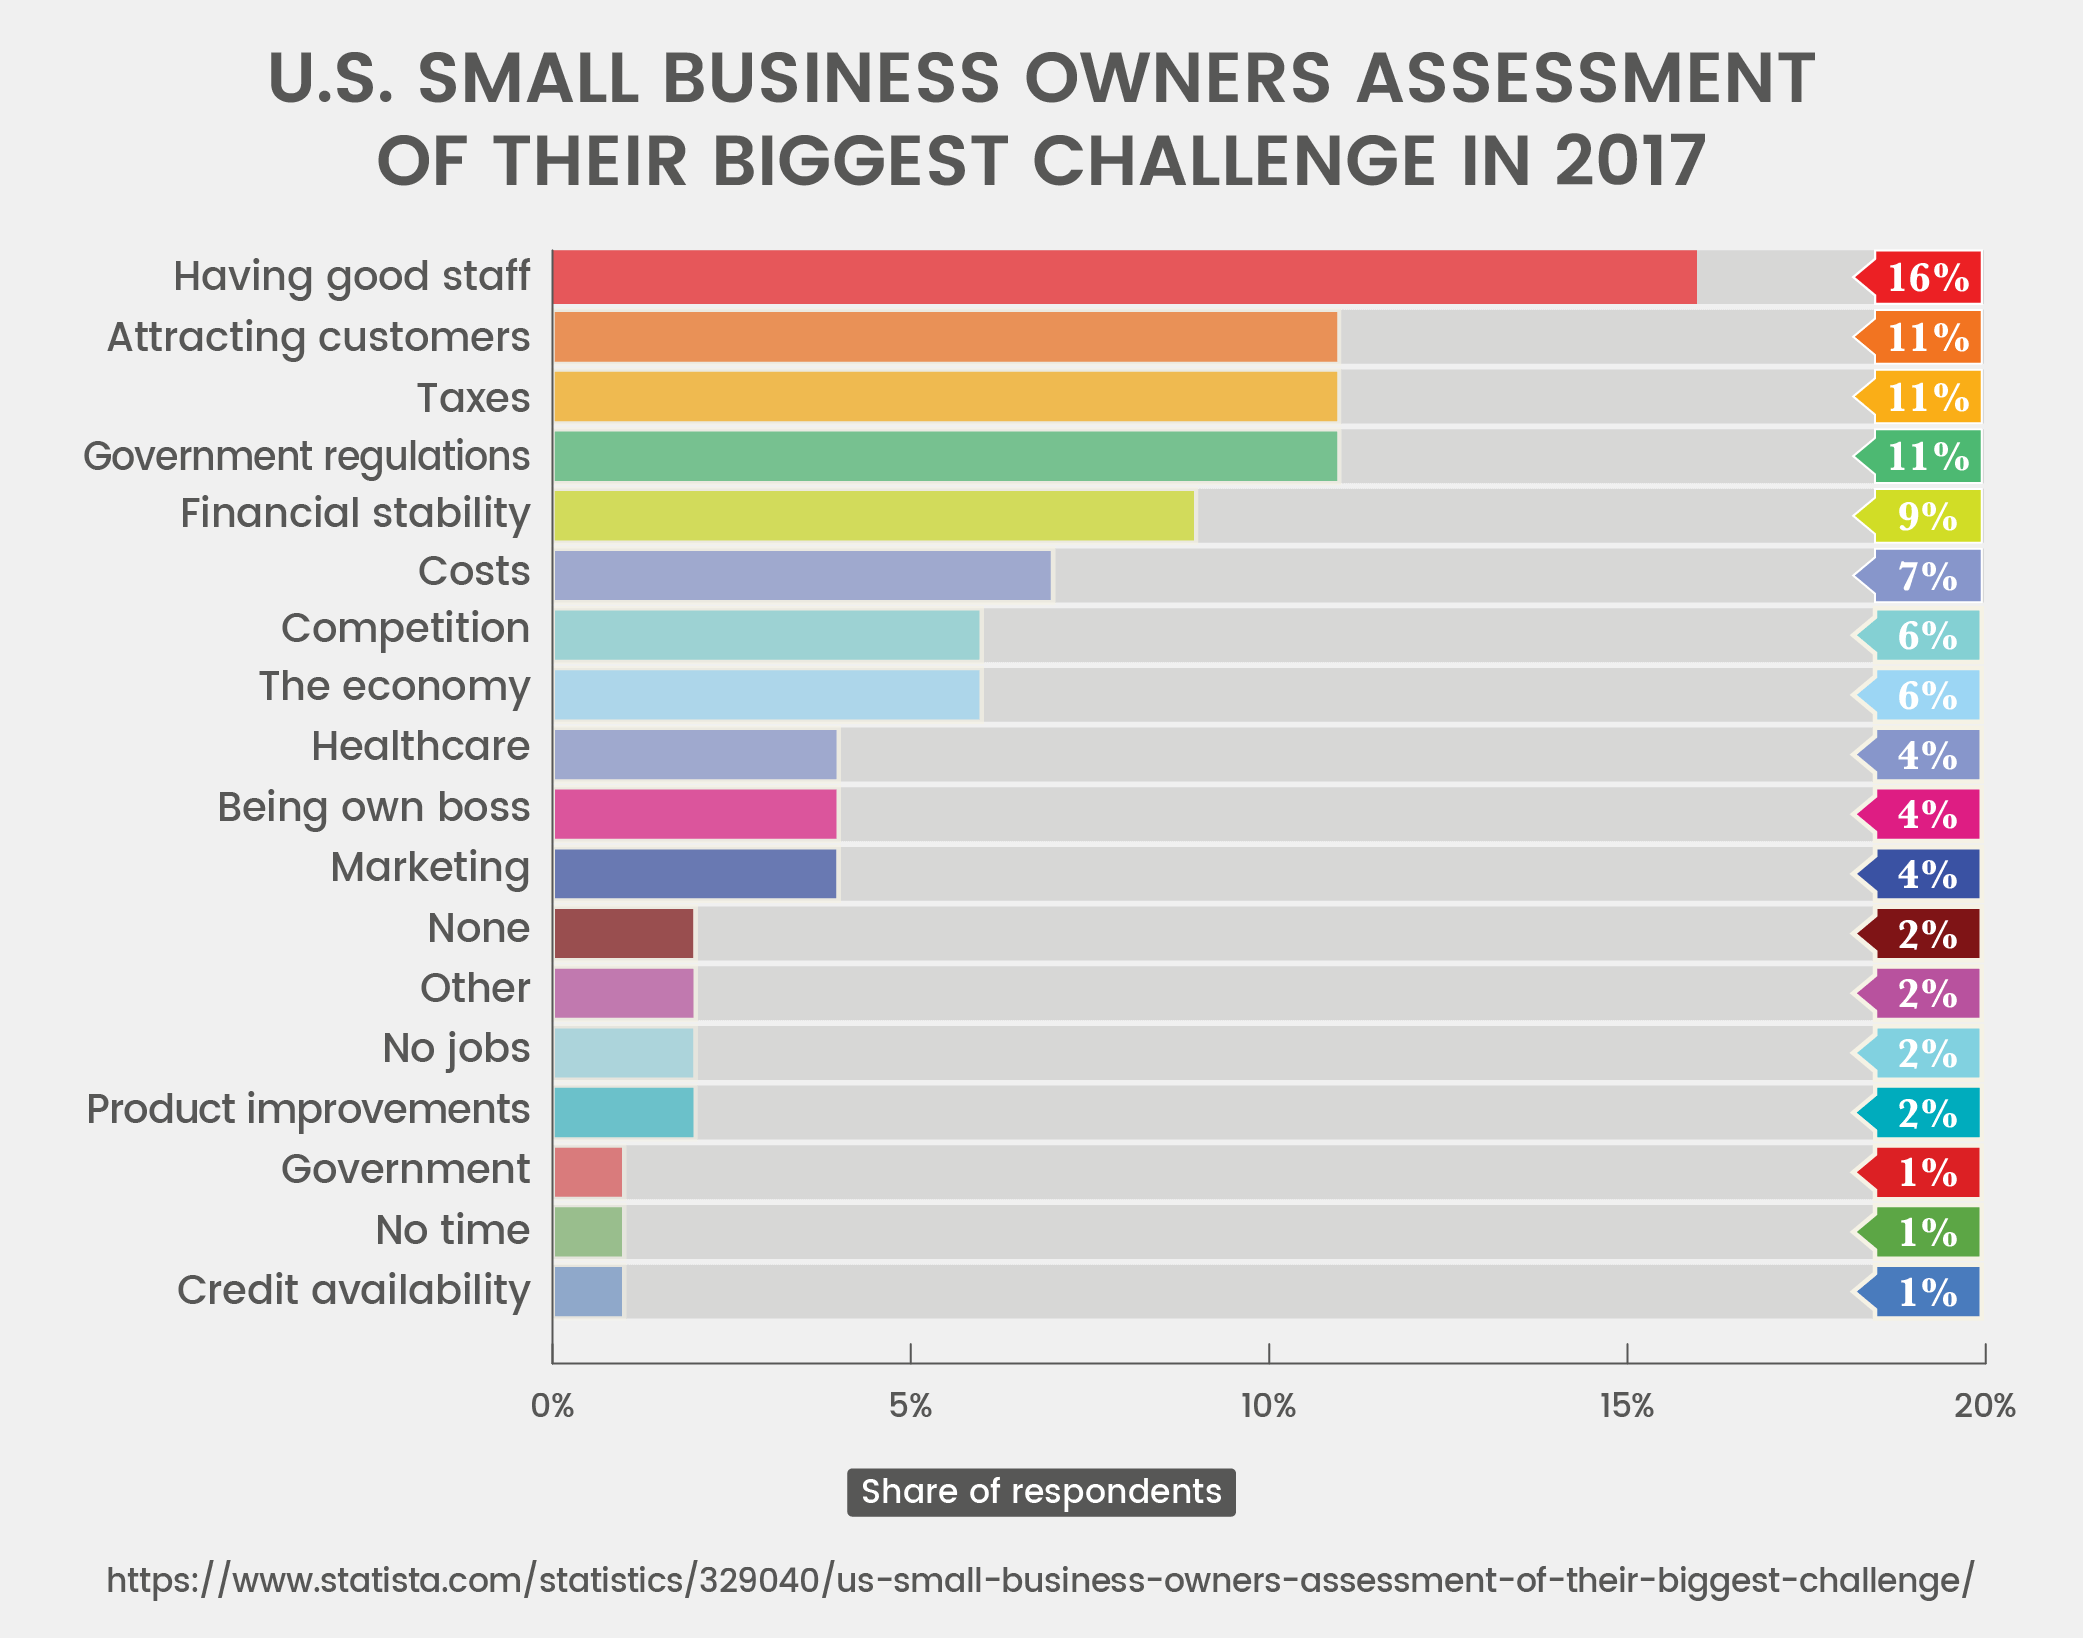 U.S. Small Business Owners Assessment of Their Biggest Challenge in 2017